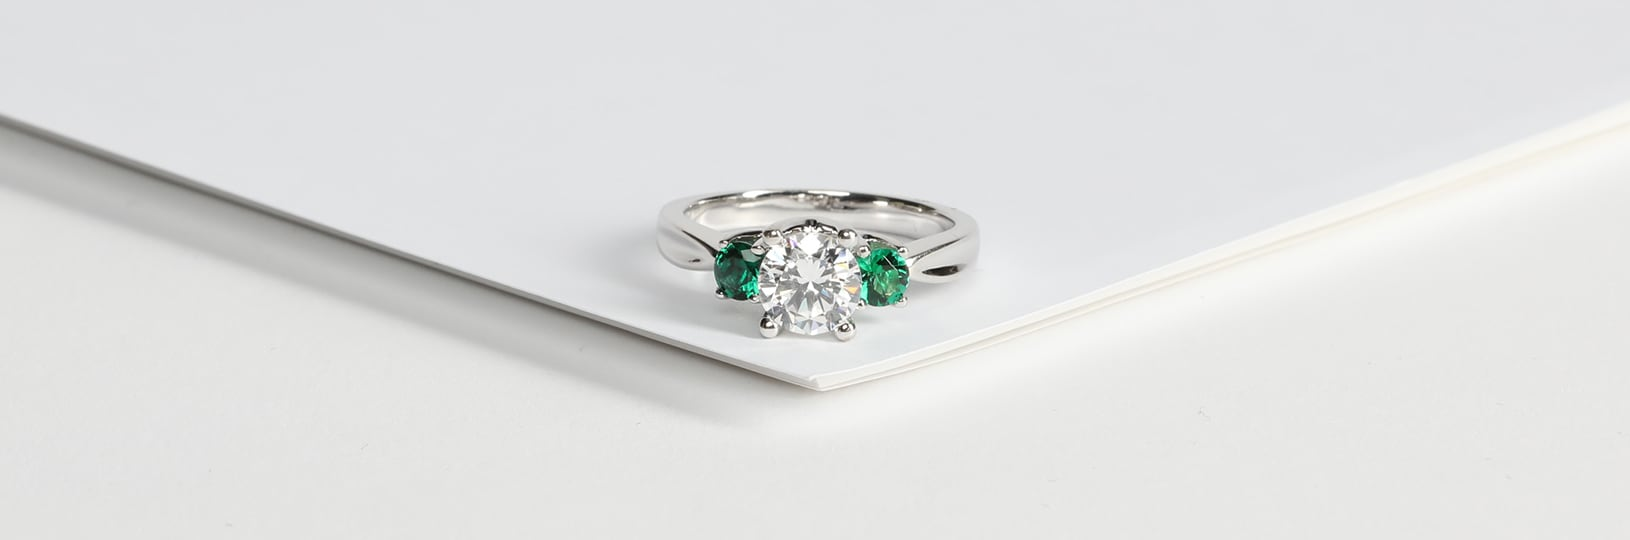 A lab created emerald engagement ring.